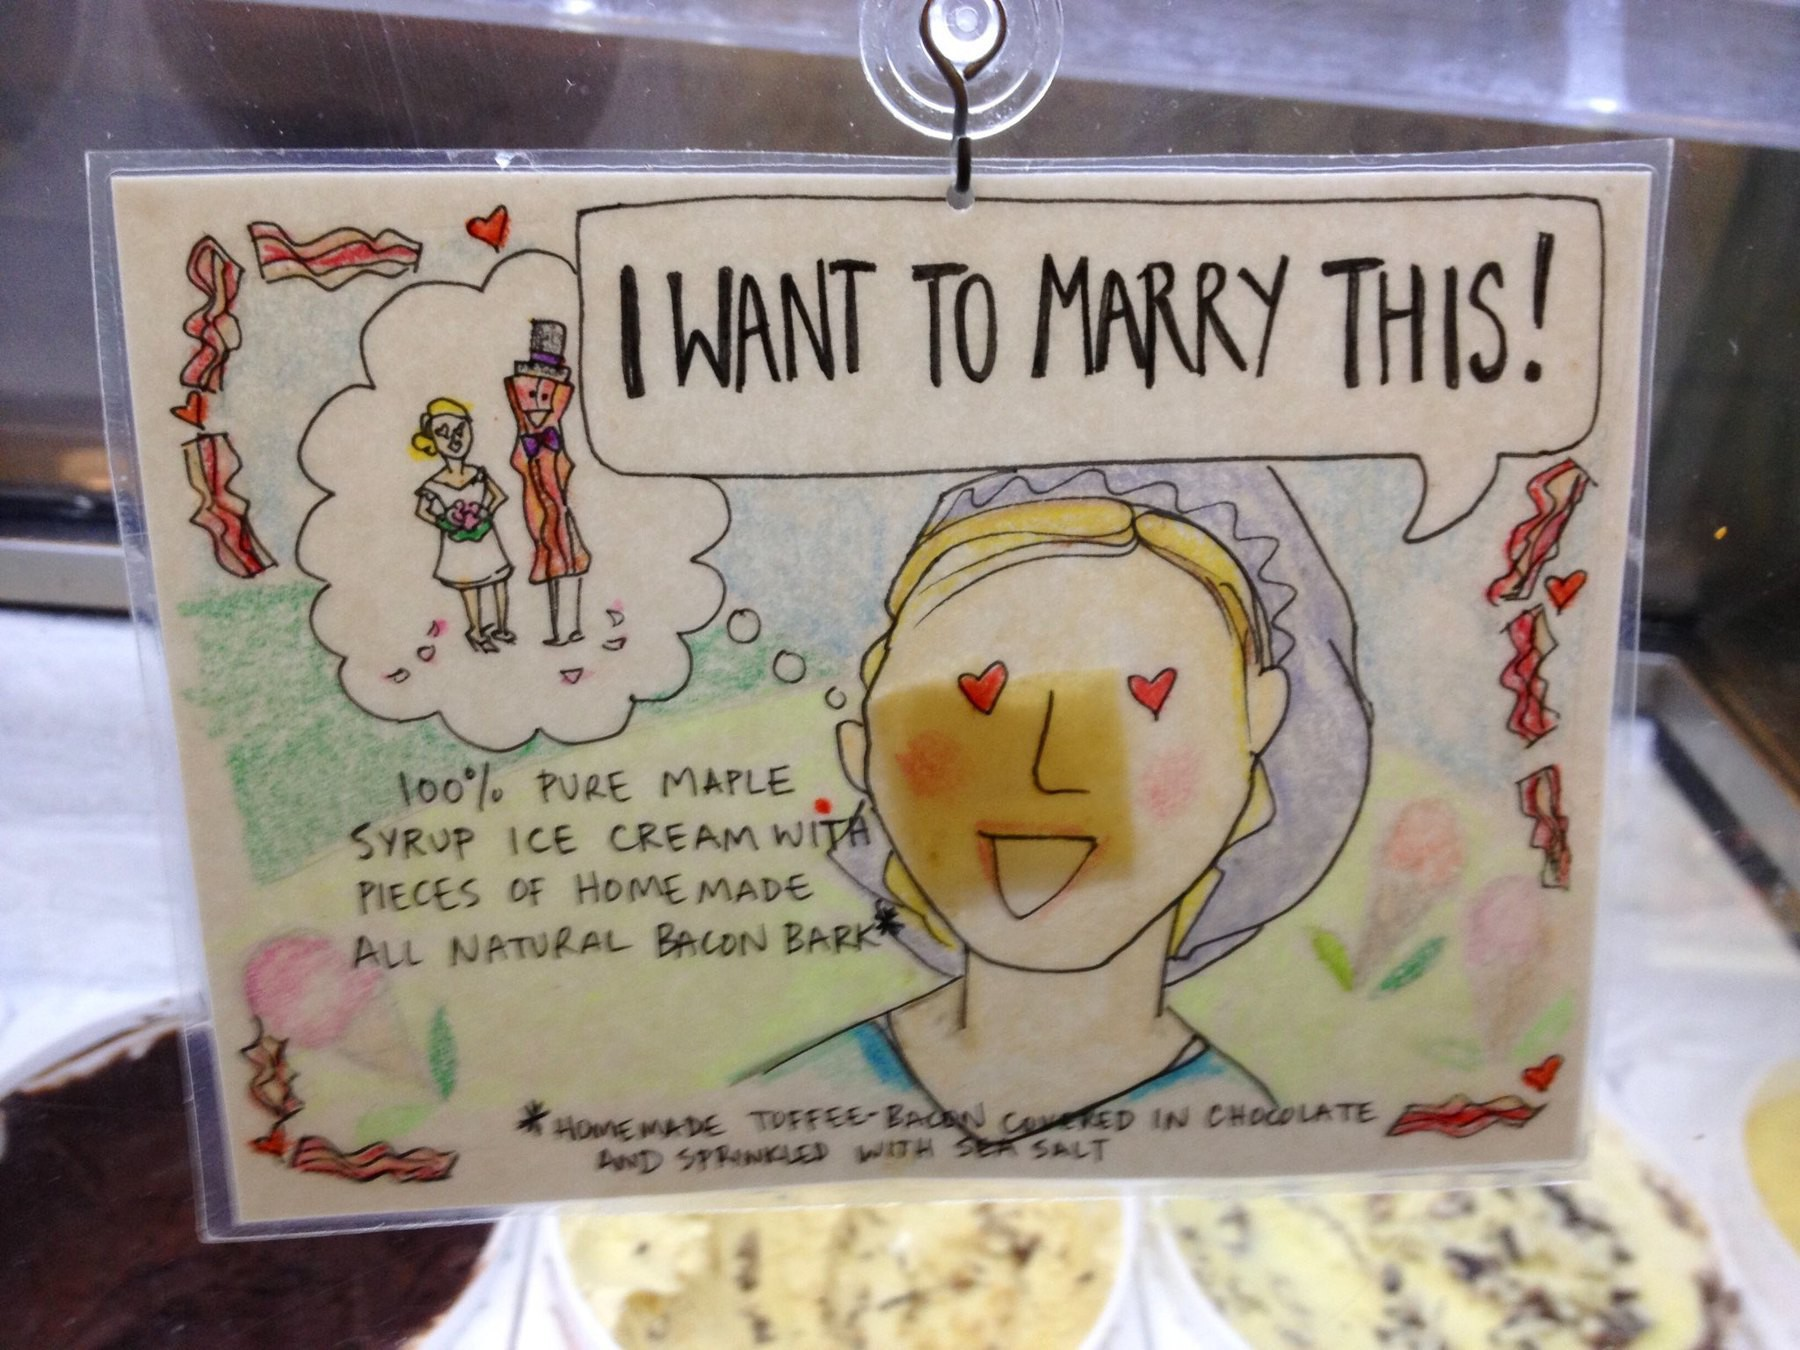 "Card for ice cream named: ""I want to marry this, 100% pure maple syrup ice cream with pieces of homemade all natural bacon bark."""